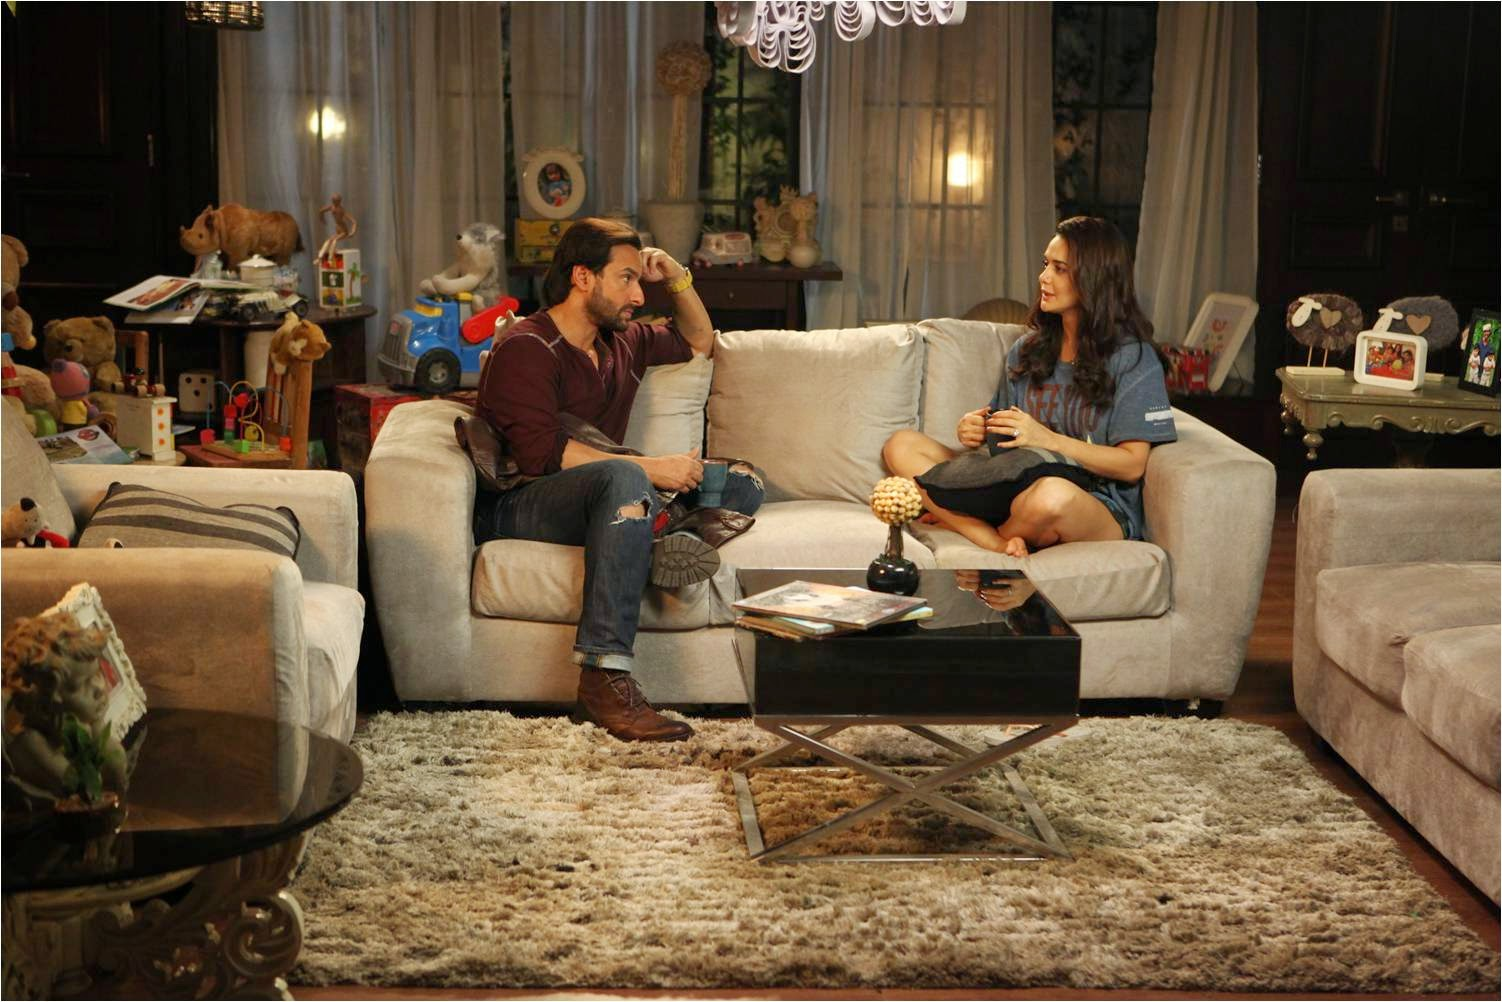 Saif Ali Khan and Preity Zinta talking, having coffee together and sitting on sofa in Happy Ending movie